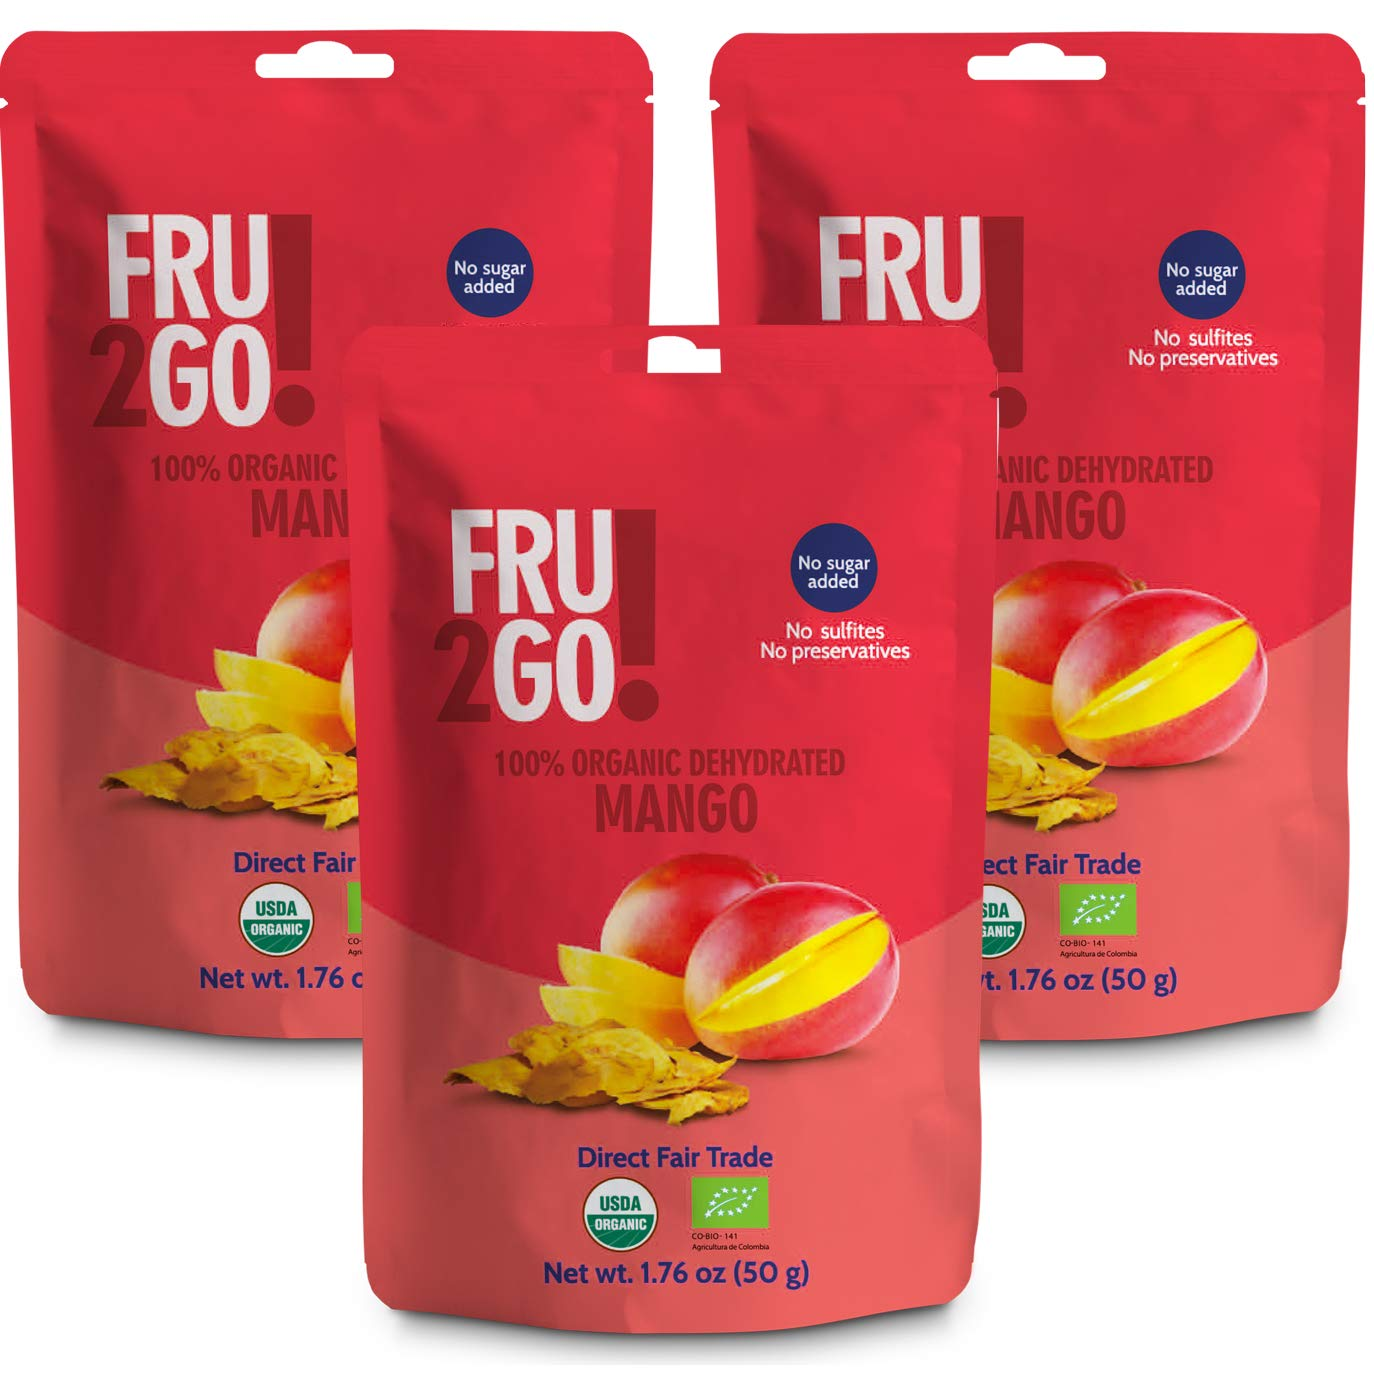 Fru2Go Organic, Dehydrated Mango Slices - 1.76 oz (Pack of 3) - No Sugar Added - All-Natural Mangoes - Raw - Unsulfured - Direct Fair Trade Fruit - from Colombia